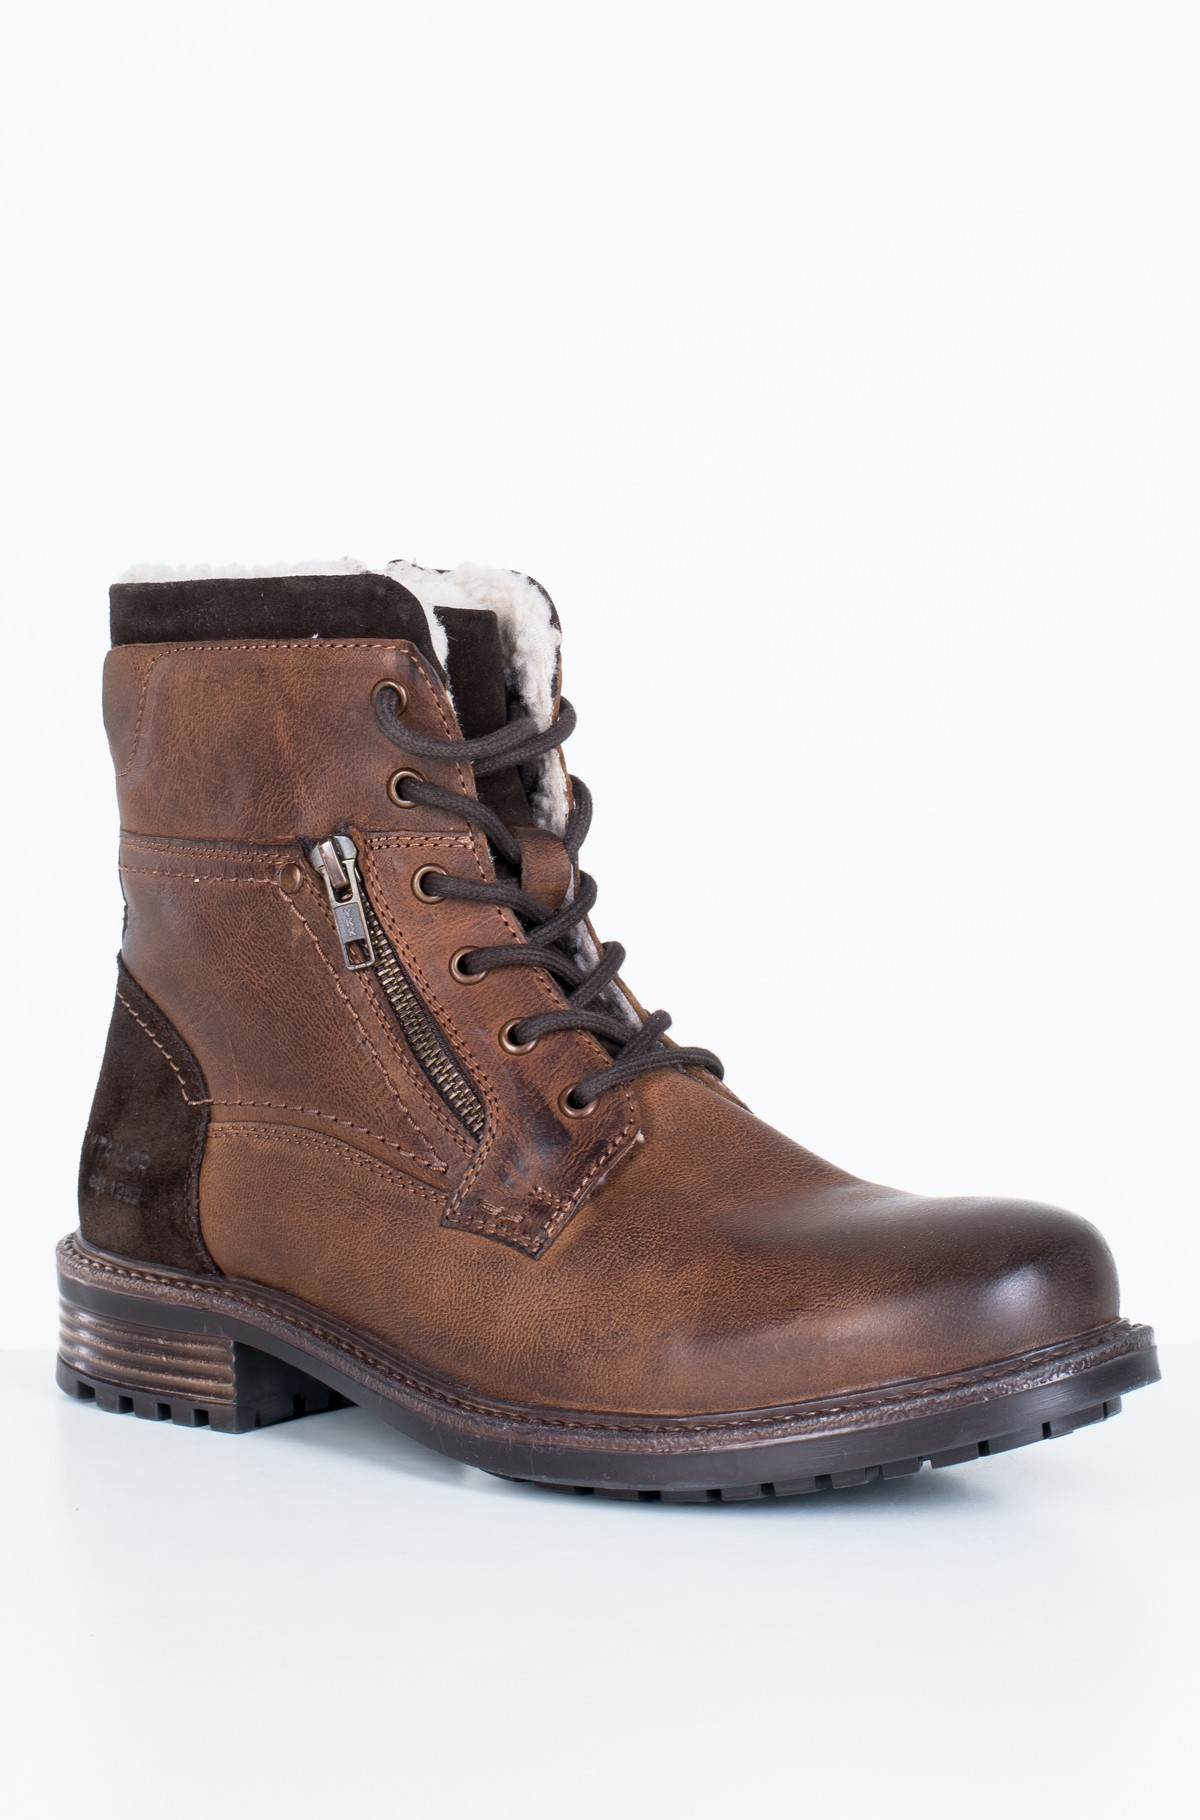 Boots 7989203-full-1